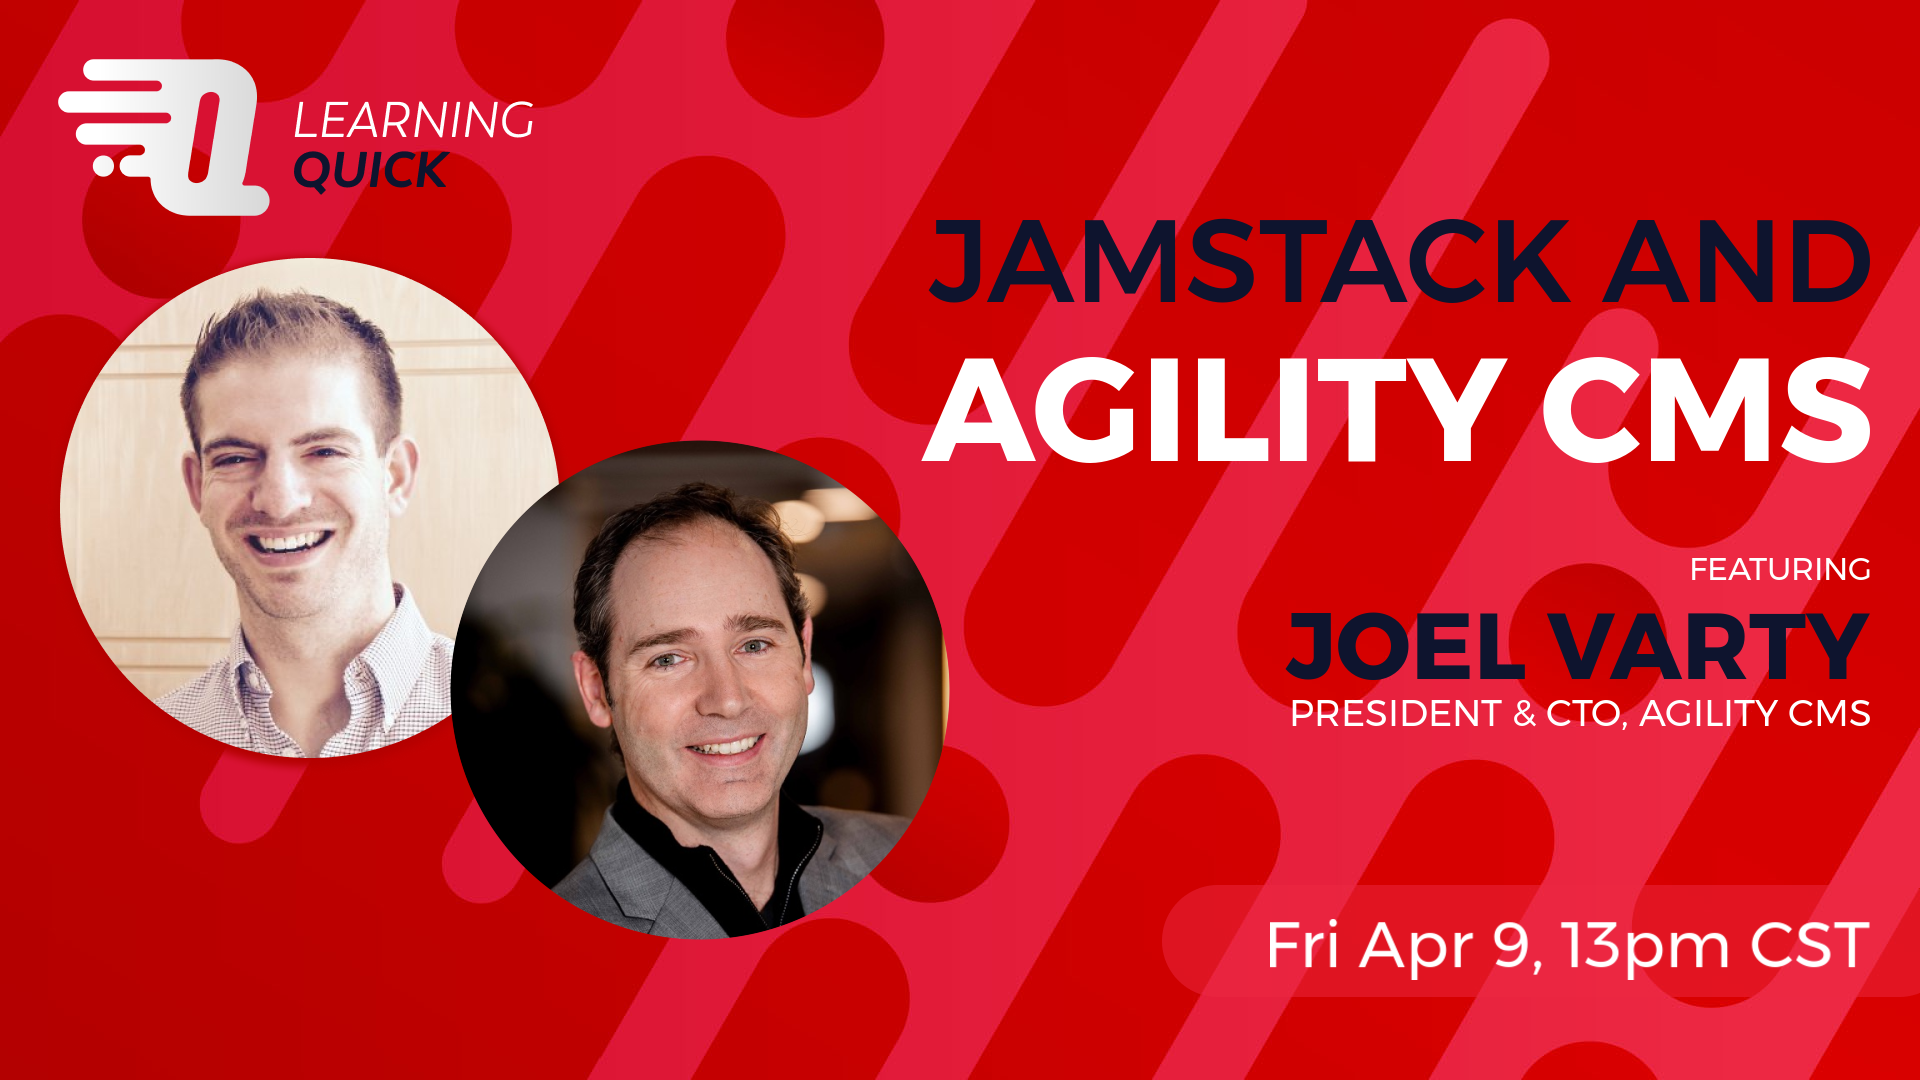 Jamstack and Agility CMS with Joel Varty